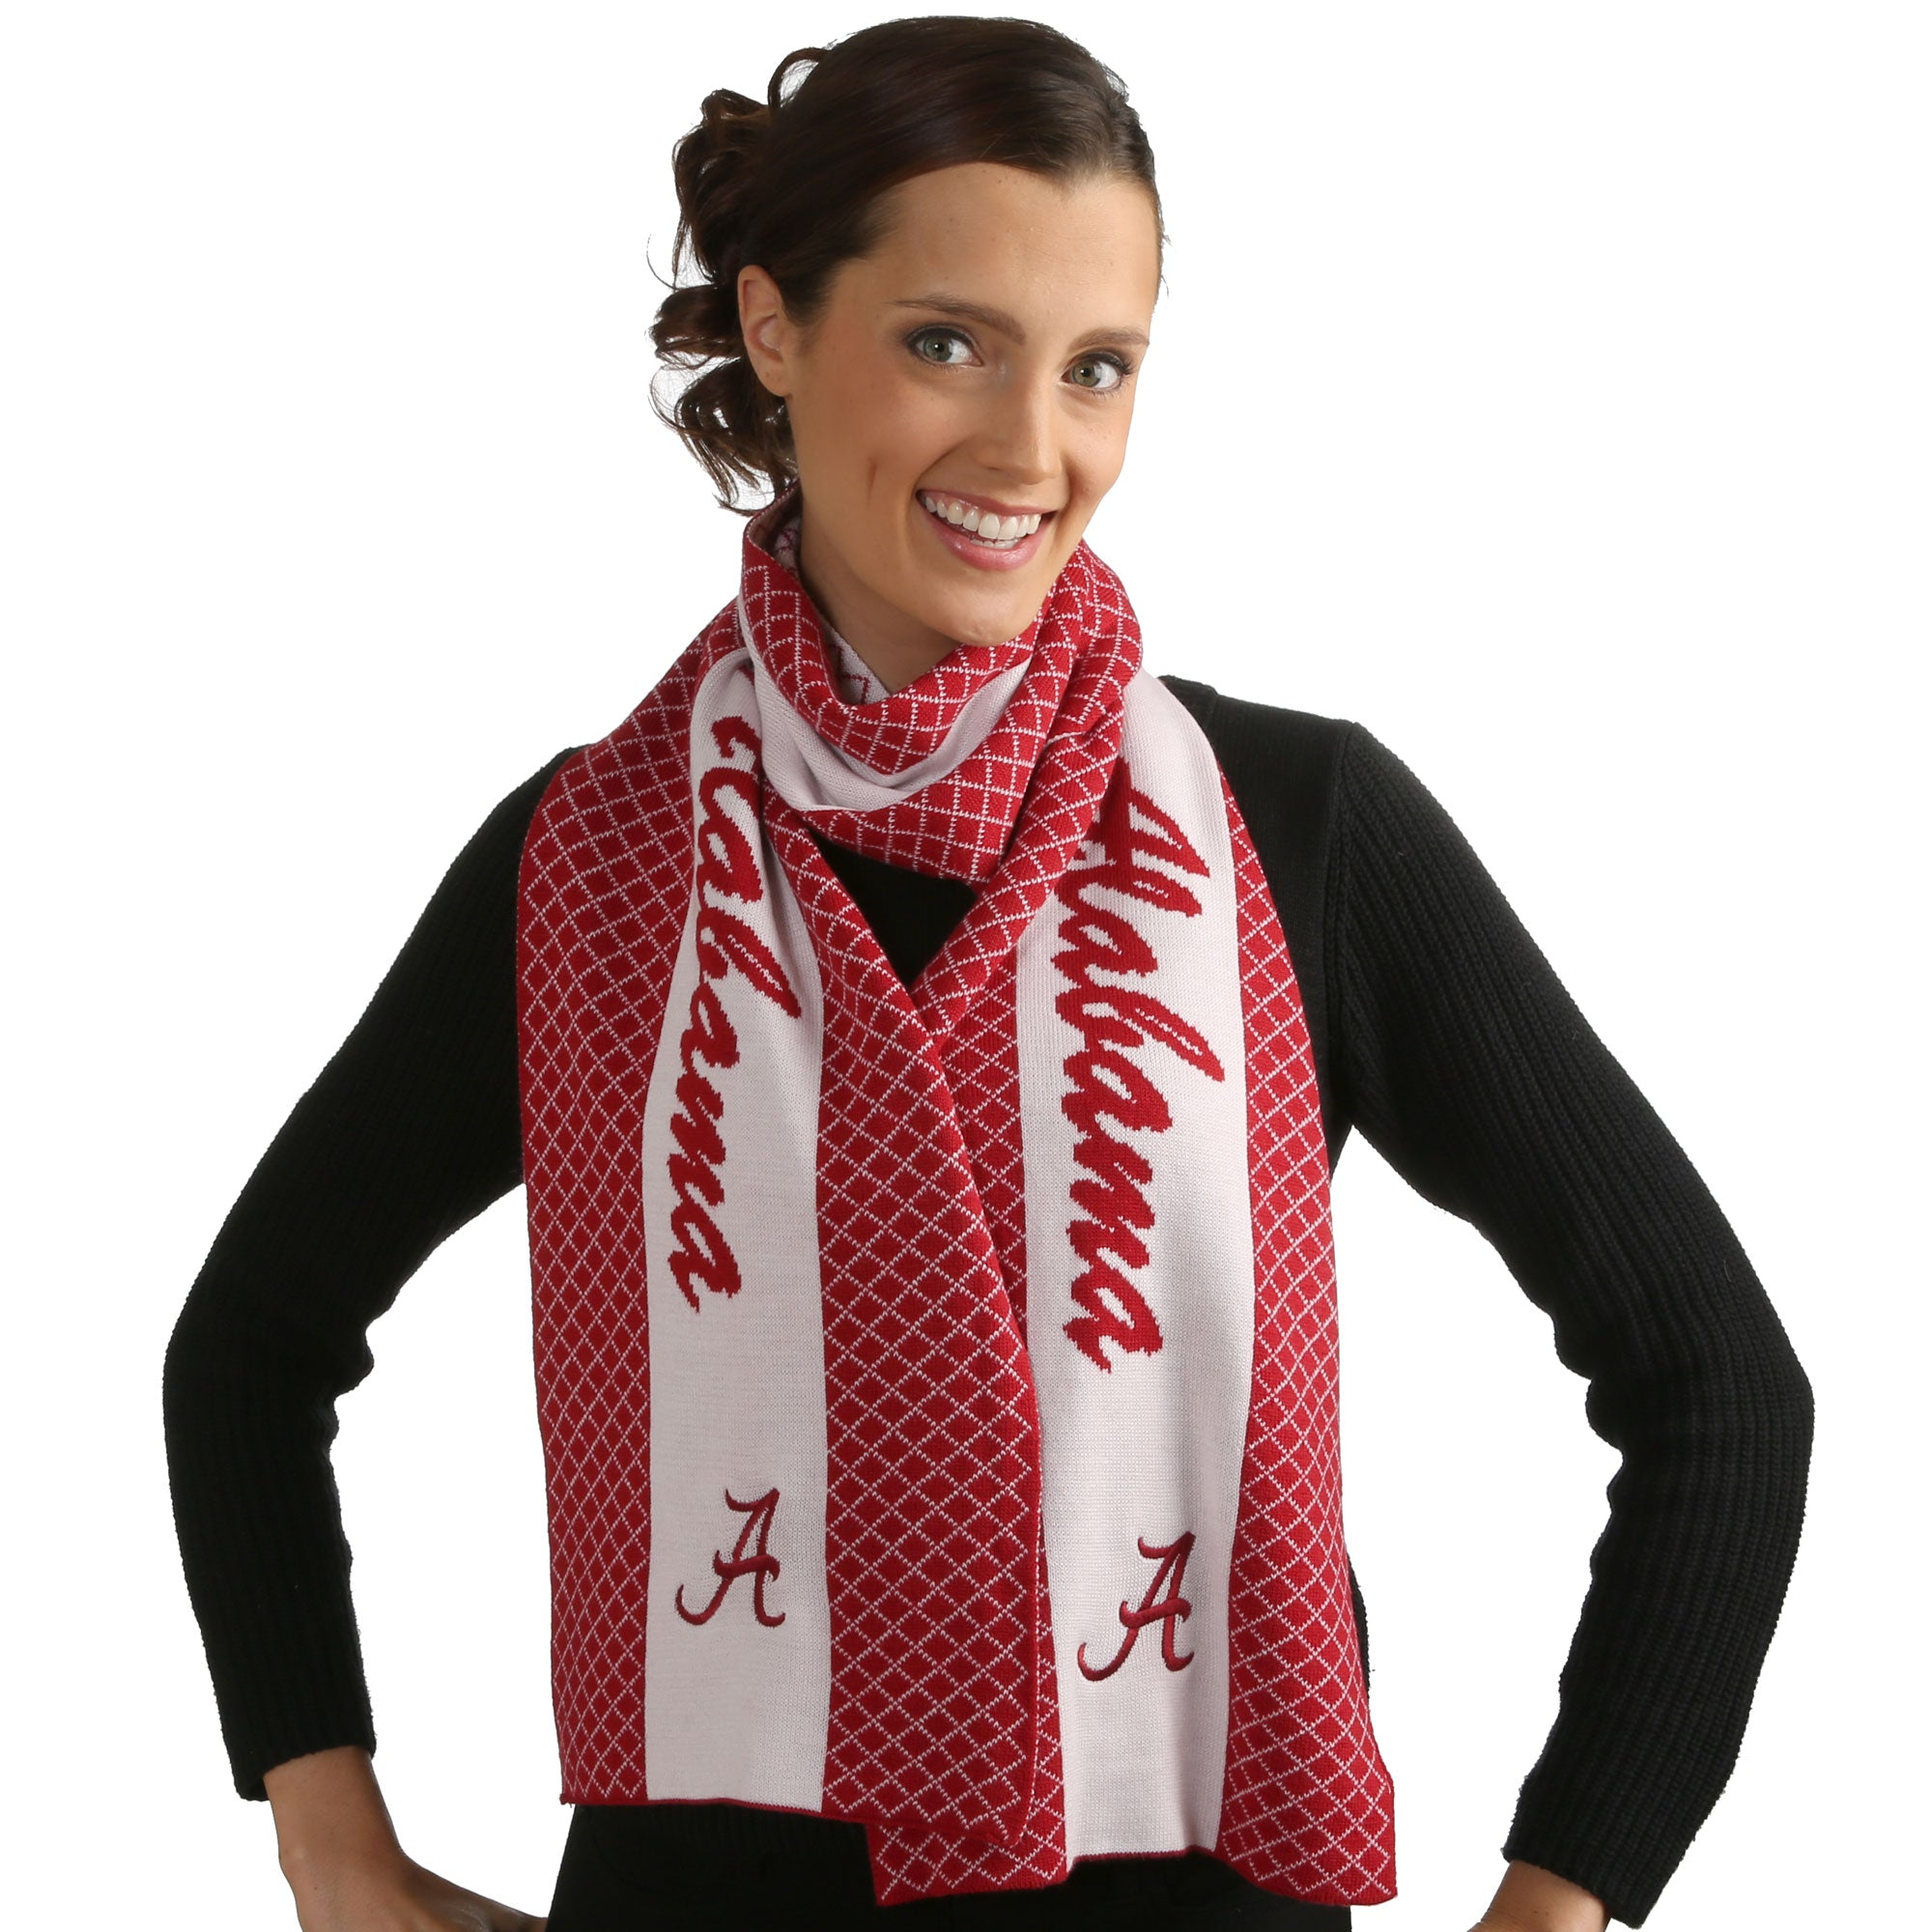 ALABAMA ROLL TIDE AUBURN TIGERS 2 TONE KNIT SCARF